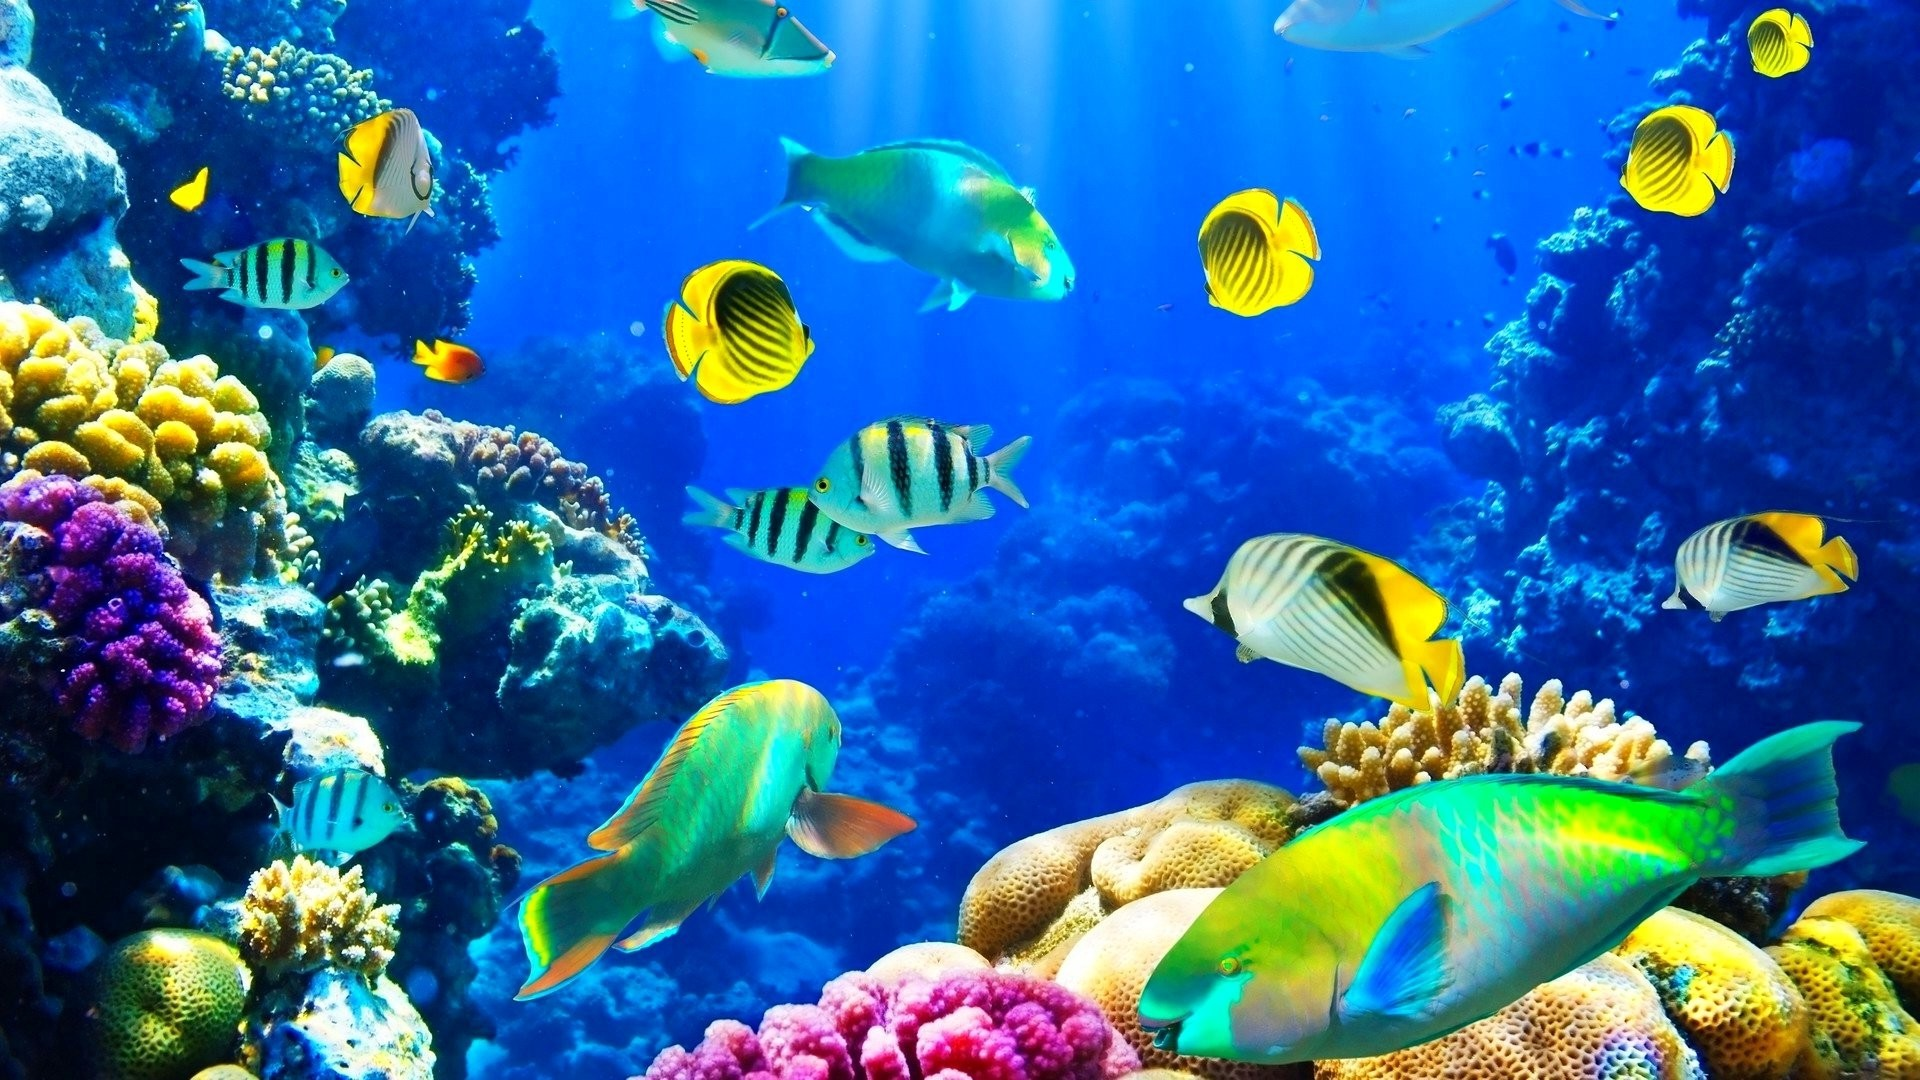 Res: 1920x1080, Sea Life Wallpapers 18 - 1920 X 1080